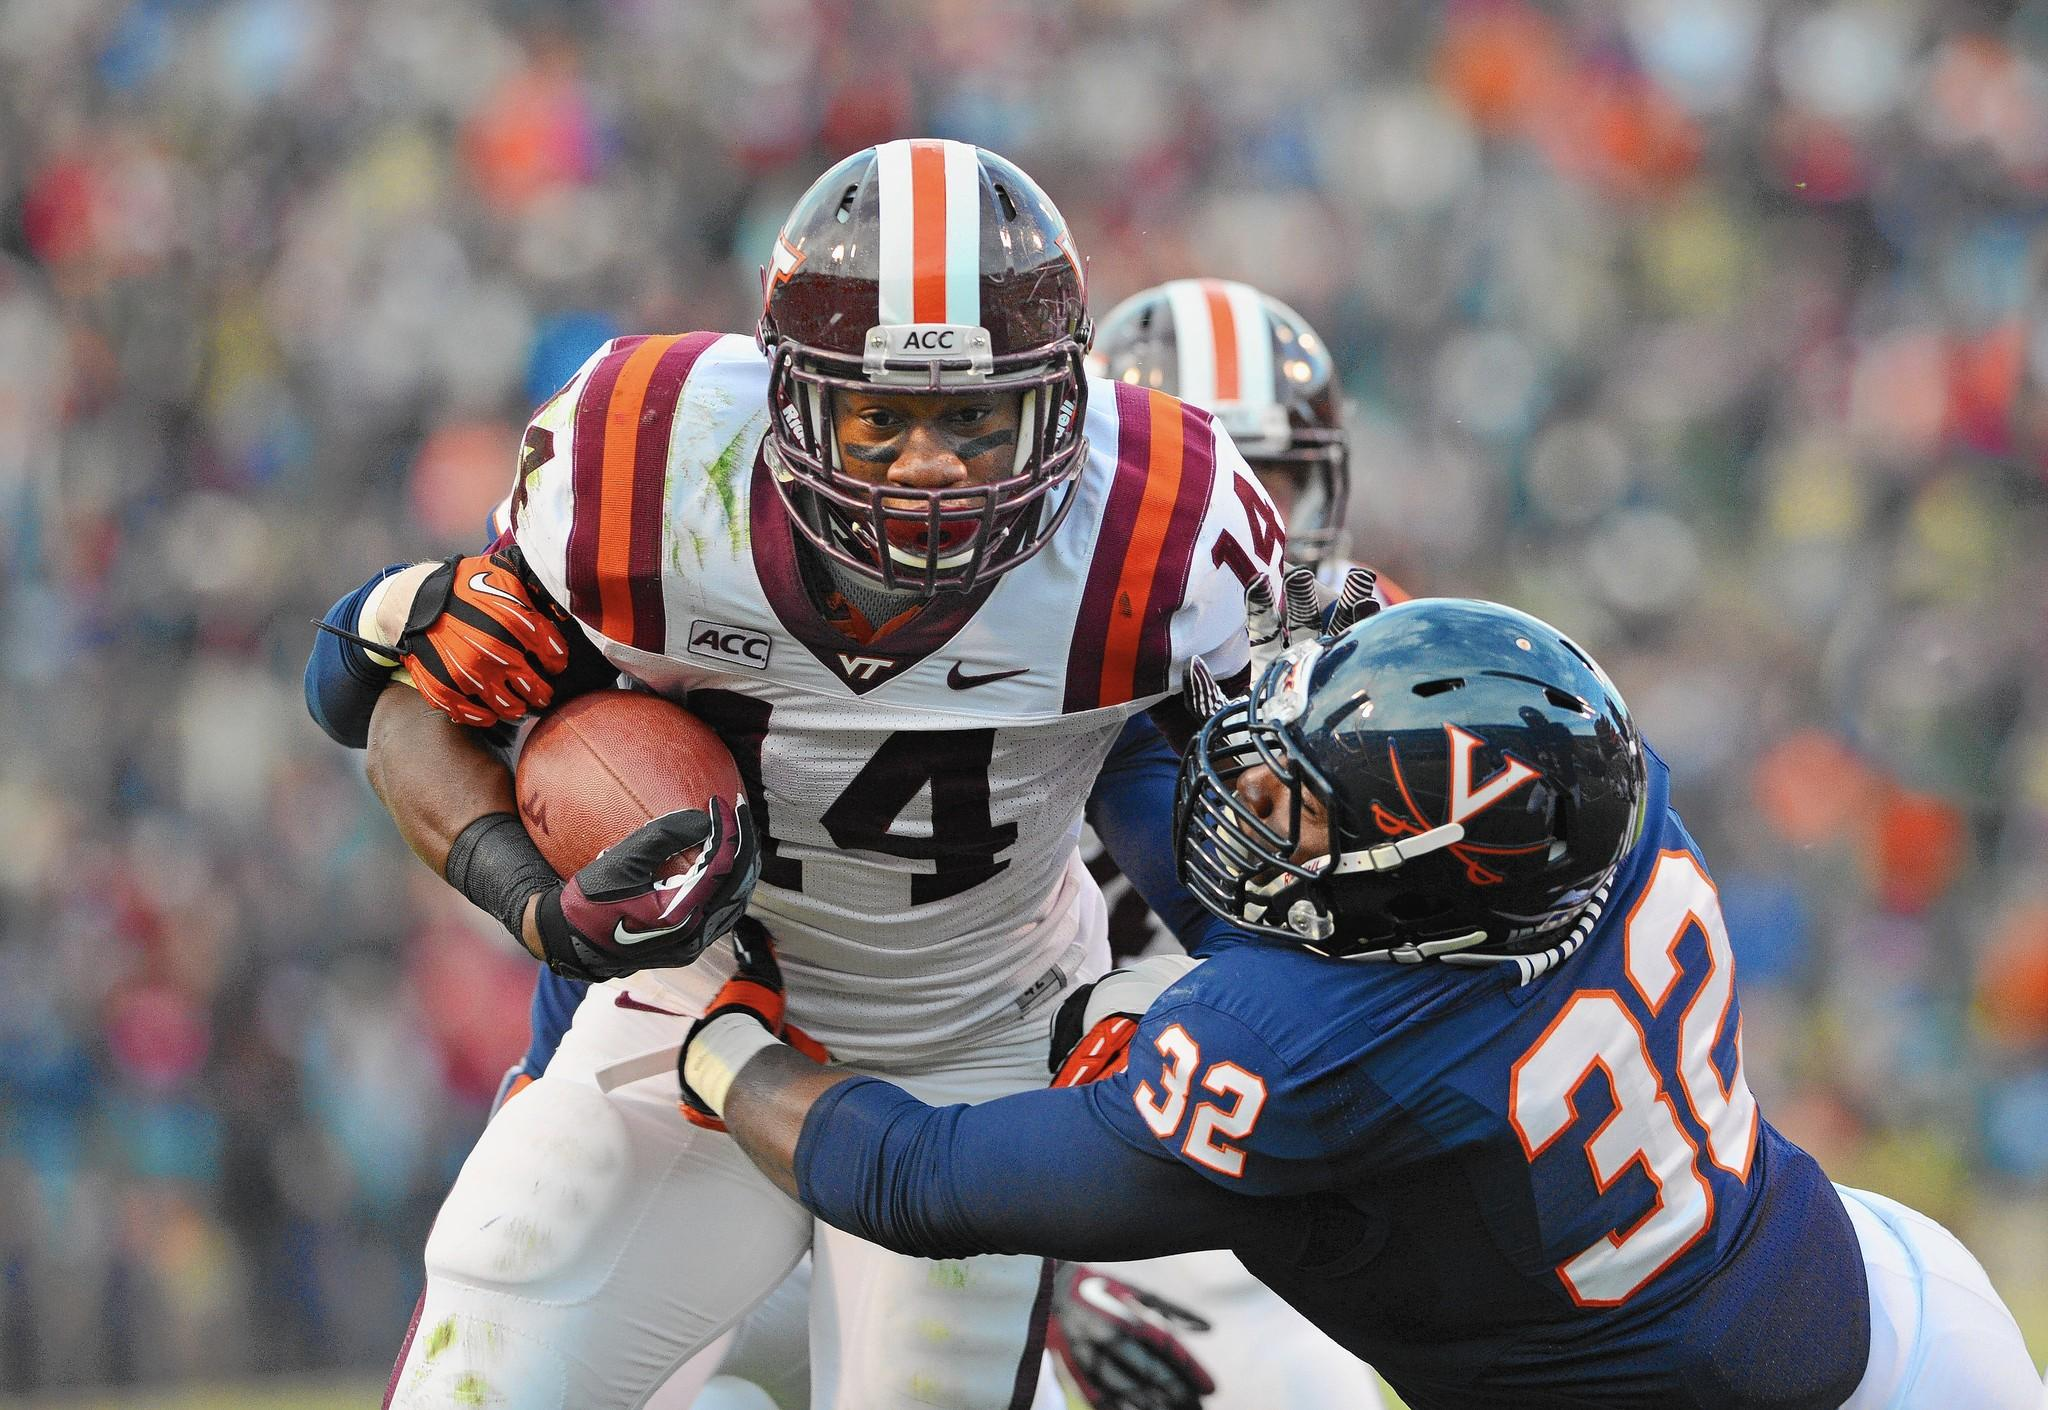 Virginia Tech's Trey Edmunds runs against Virginia during the Hokies' win in November 2013.